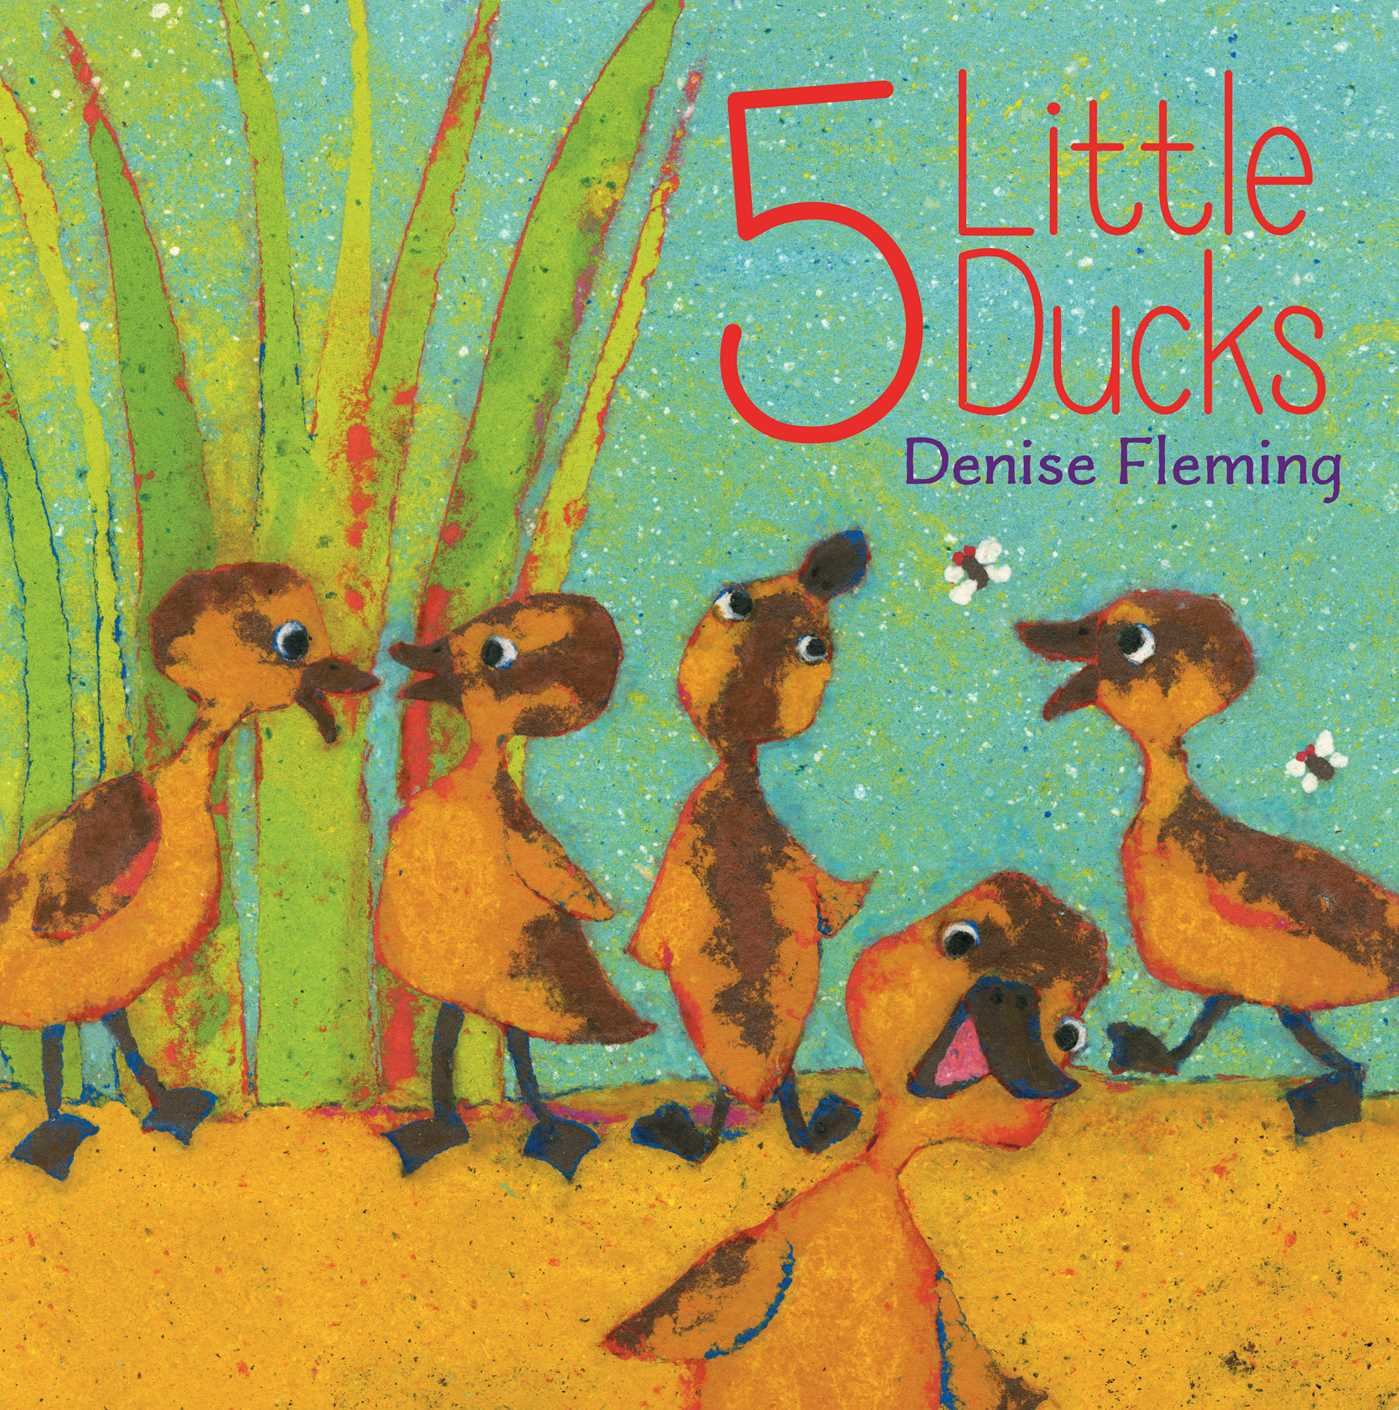 5 Little Ducks | Book by Denise Fleming | Official Publisher ...